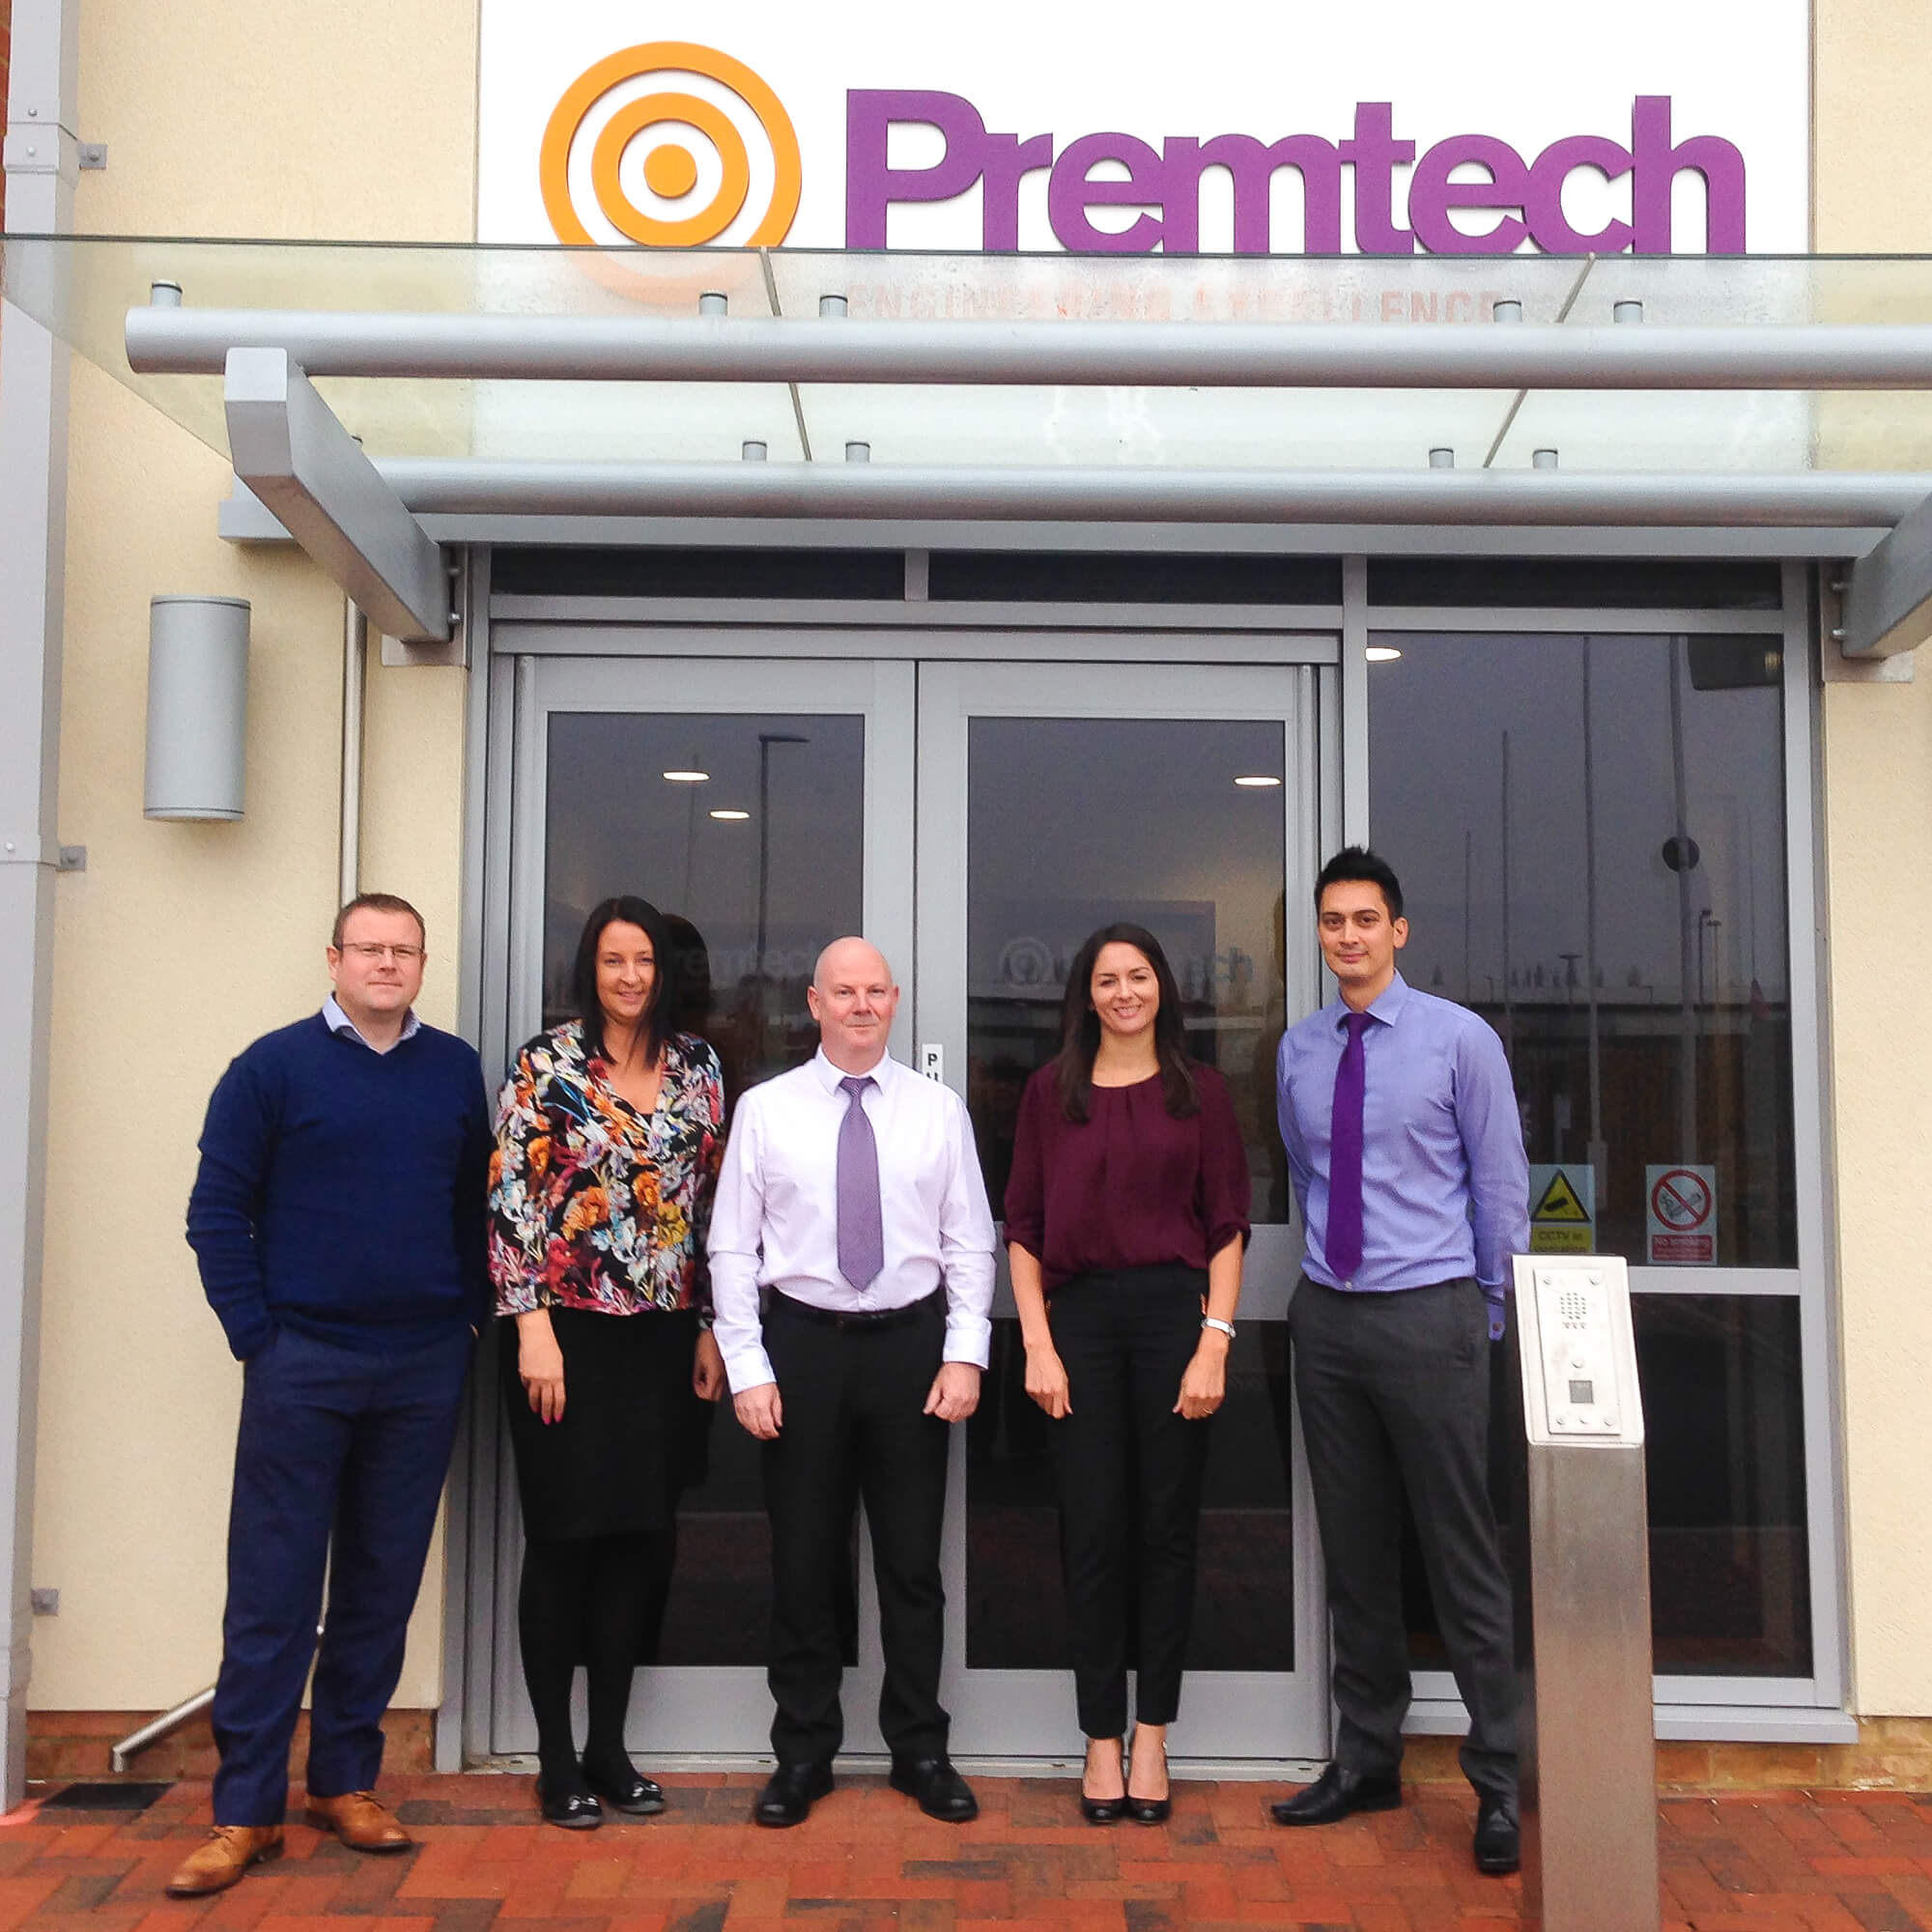 The Premtech team stand outside their office below the Premtech sign